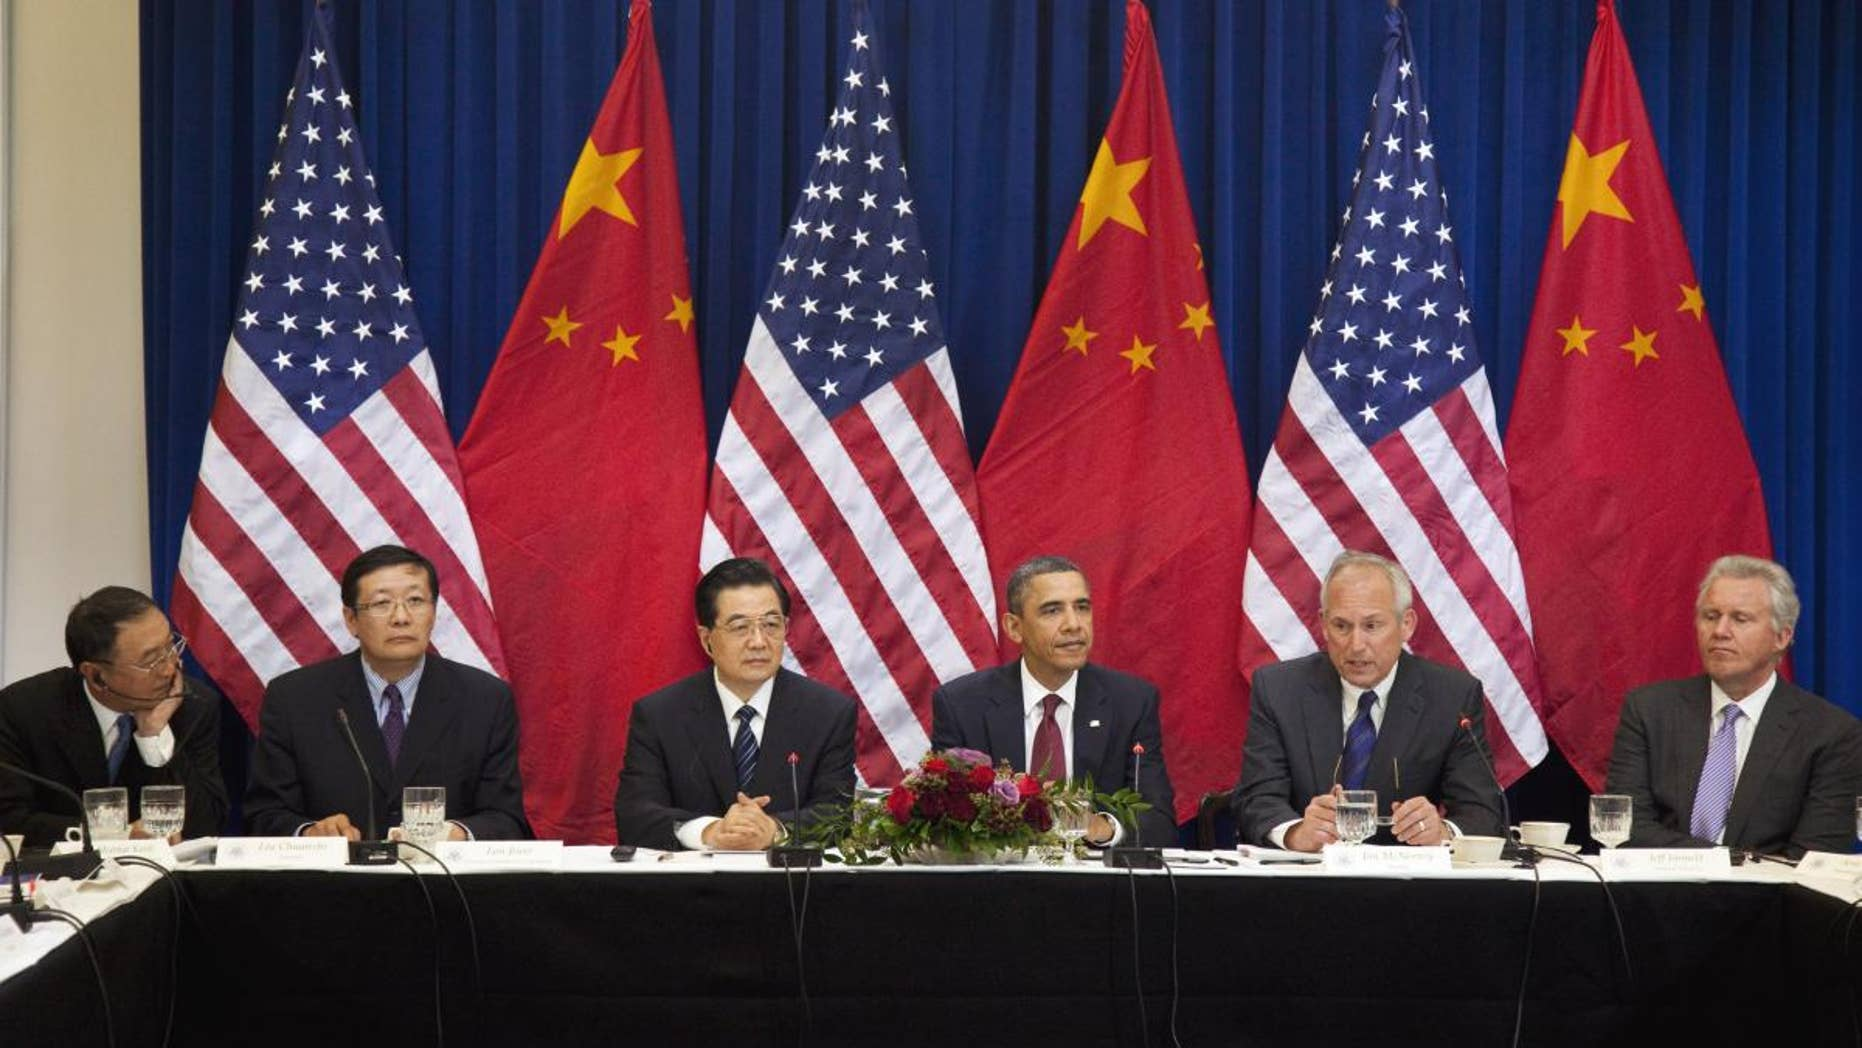 President Barack Obama and China's President Hu Jintao, meet with business leaders, Wednesday, Jan. 19, 2011, in the Eisenhower Executive Office Building on the White House complex in Washington. From left are, Liu Chuanzhi of Lenovo; Lou Jiwei of China Investment Corporation; President Hu; President Obama; Jim McNerney of CEO Boeing; and Jeff Immelt of CEO General Electric. (AP Photo/Evan Vucci)